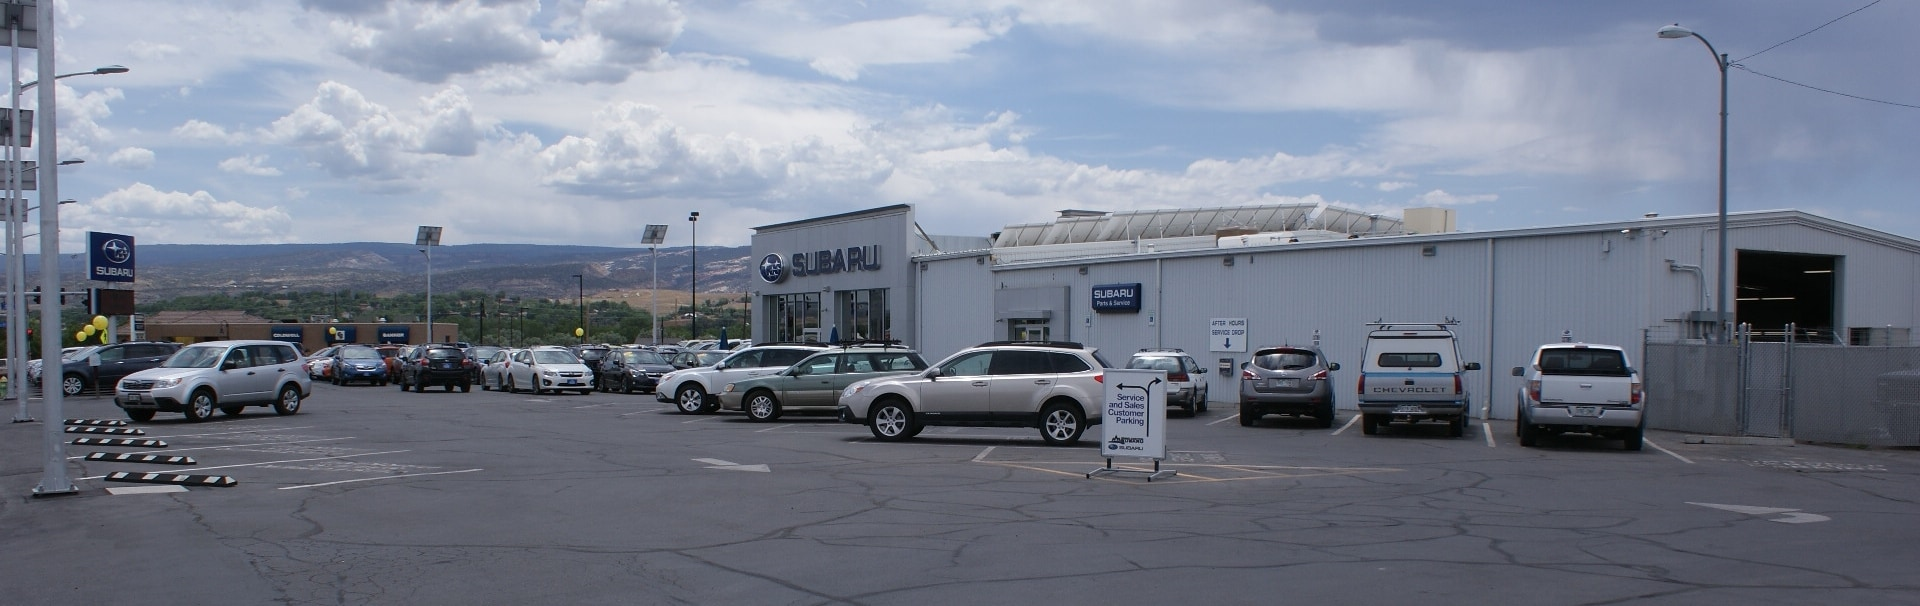 grand junction subaru new subaru dealership in grand junction co 81505. Black Bedroom Furniture Sets. Home Design Ideas